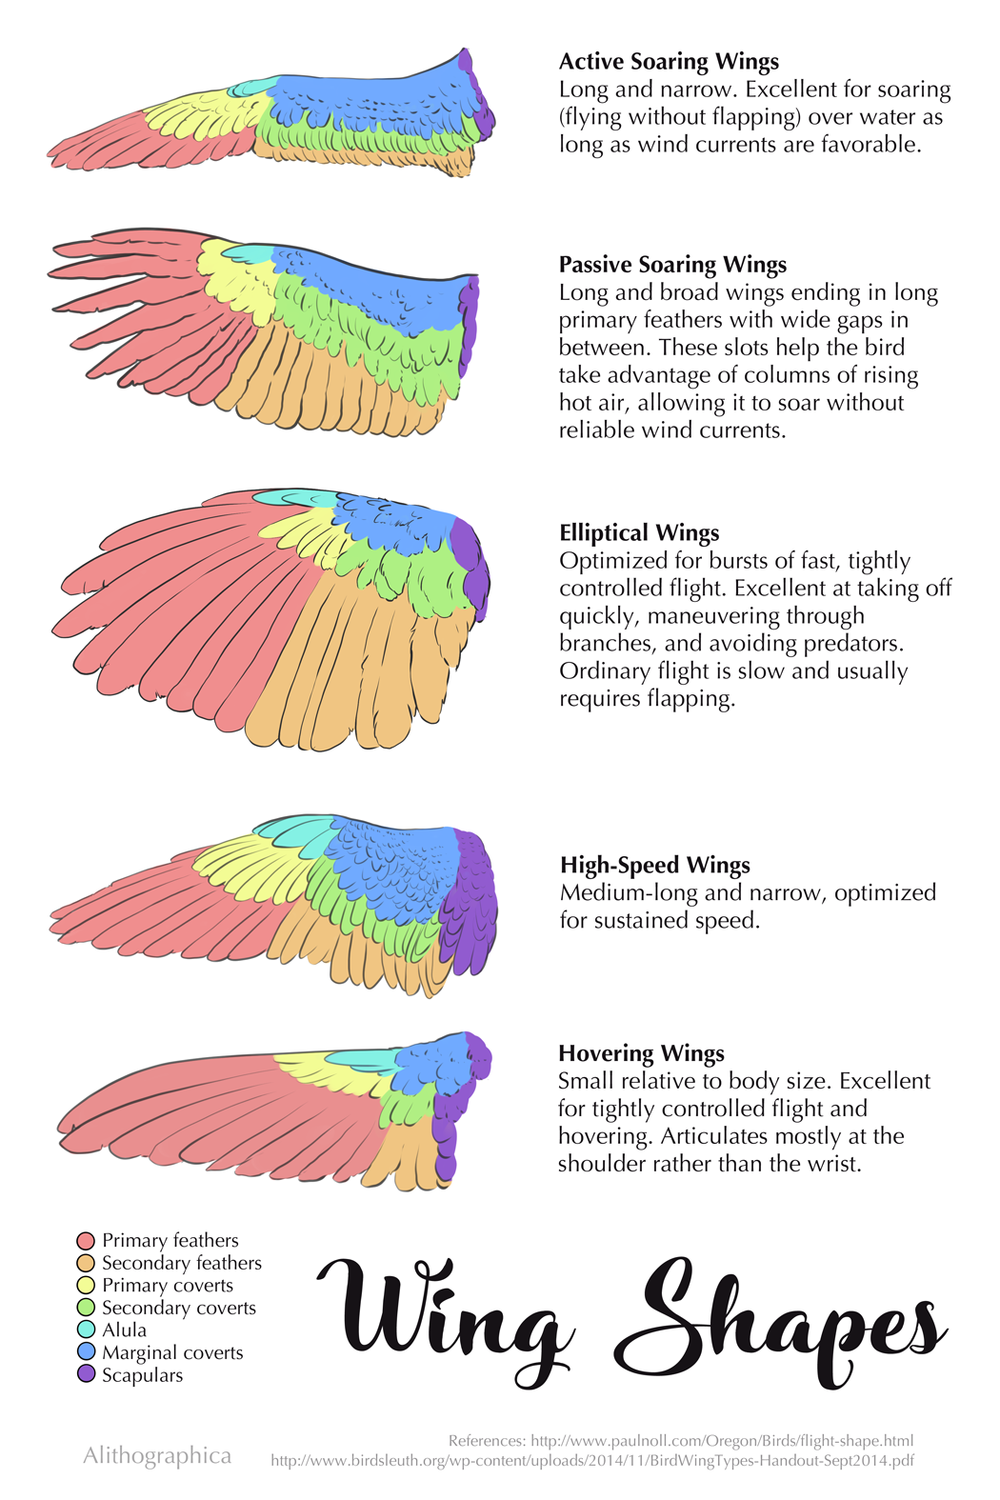 Wing Shapes infographic